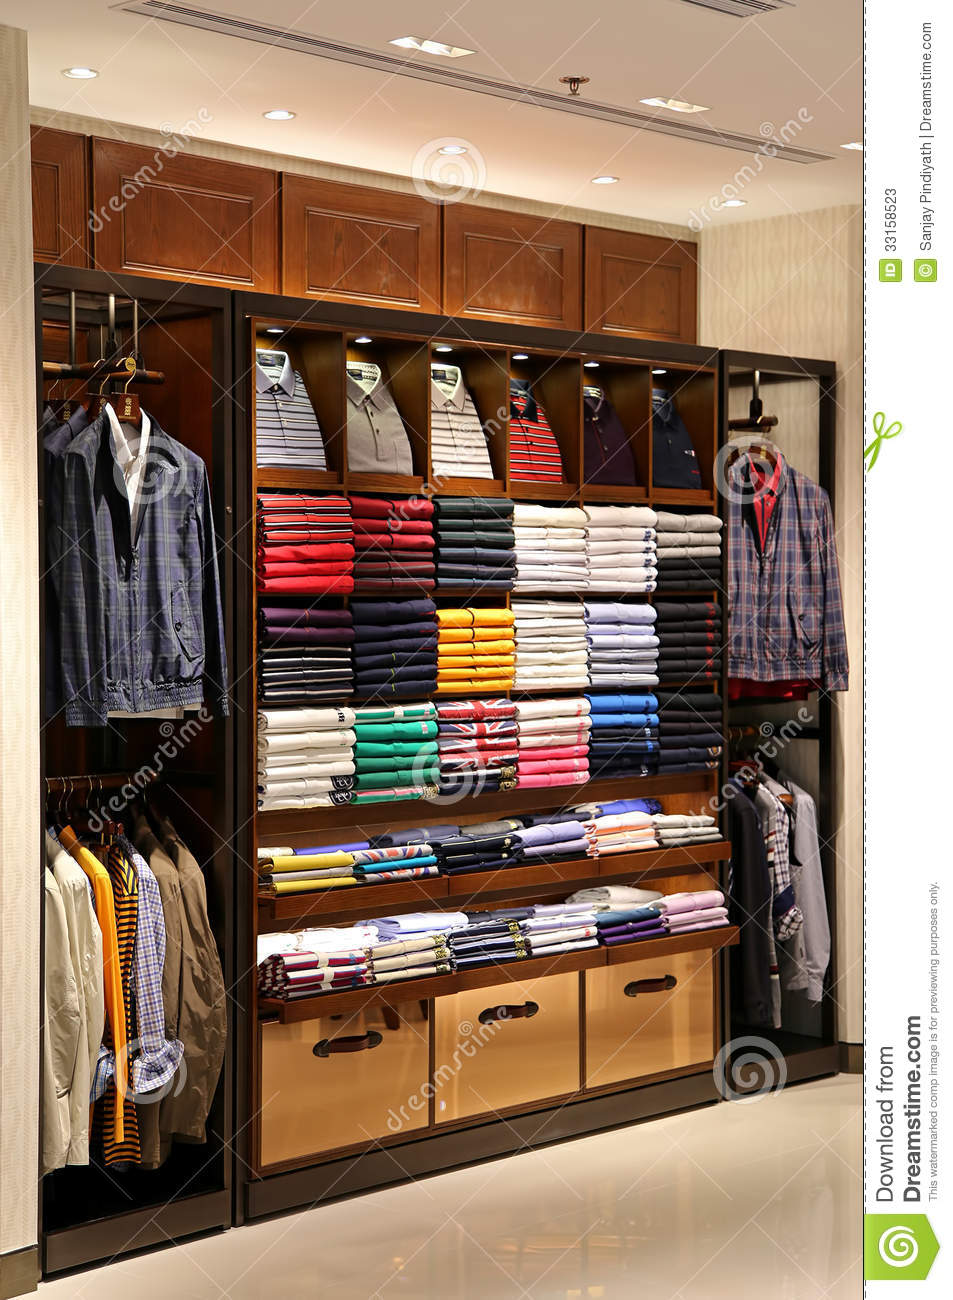 Clothing stores austin Cheap clothing stores